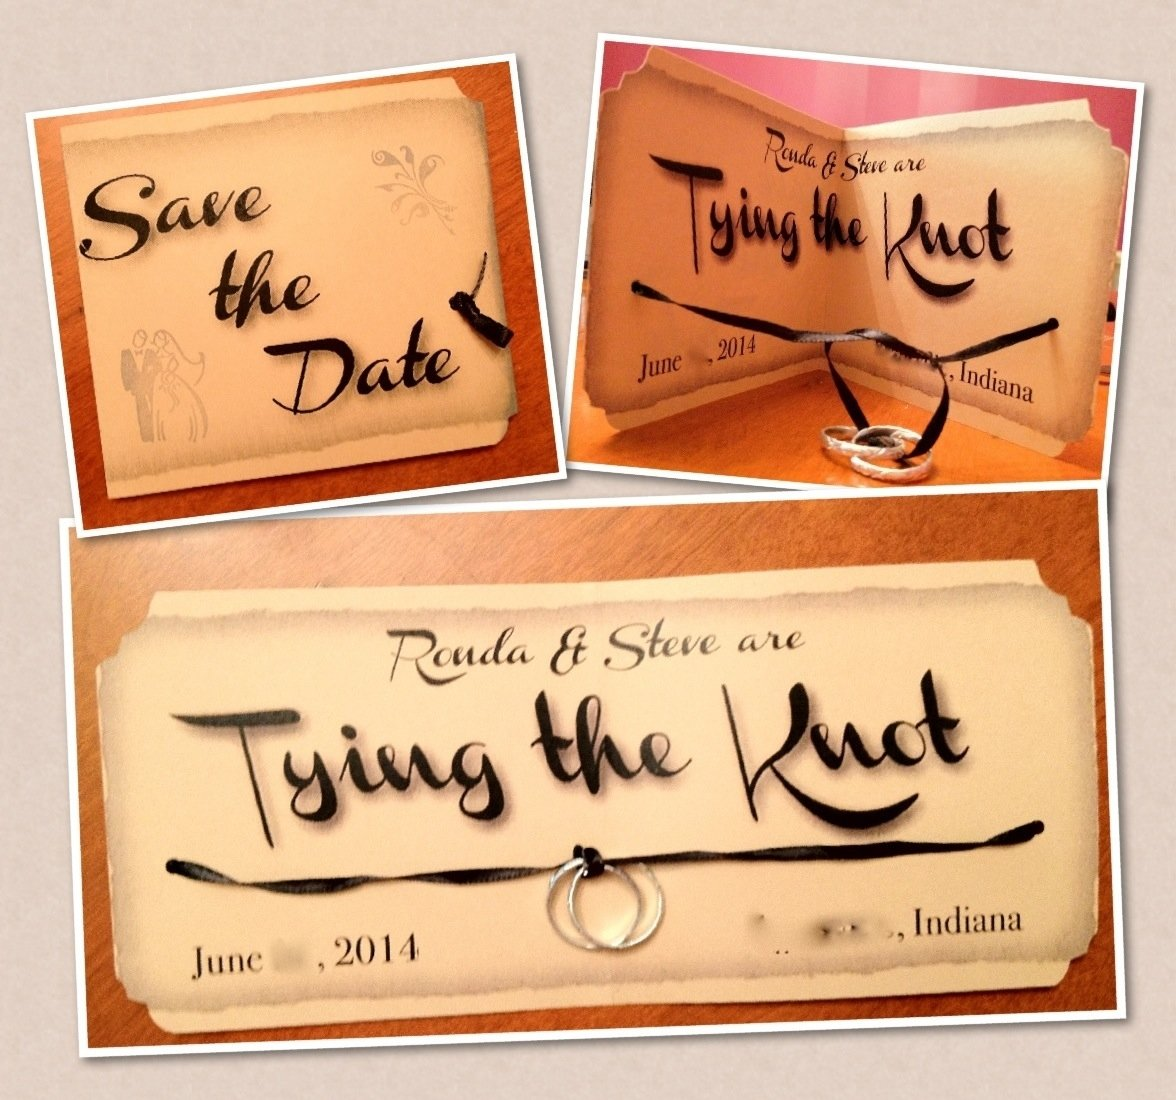 10 Amazing Save The Date Ideas Diy literally tying the knot crafty wedding 2021